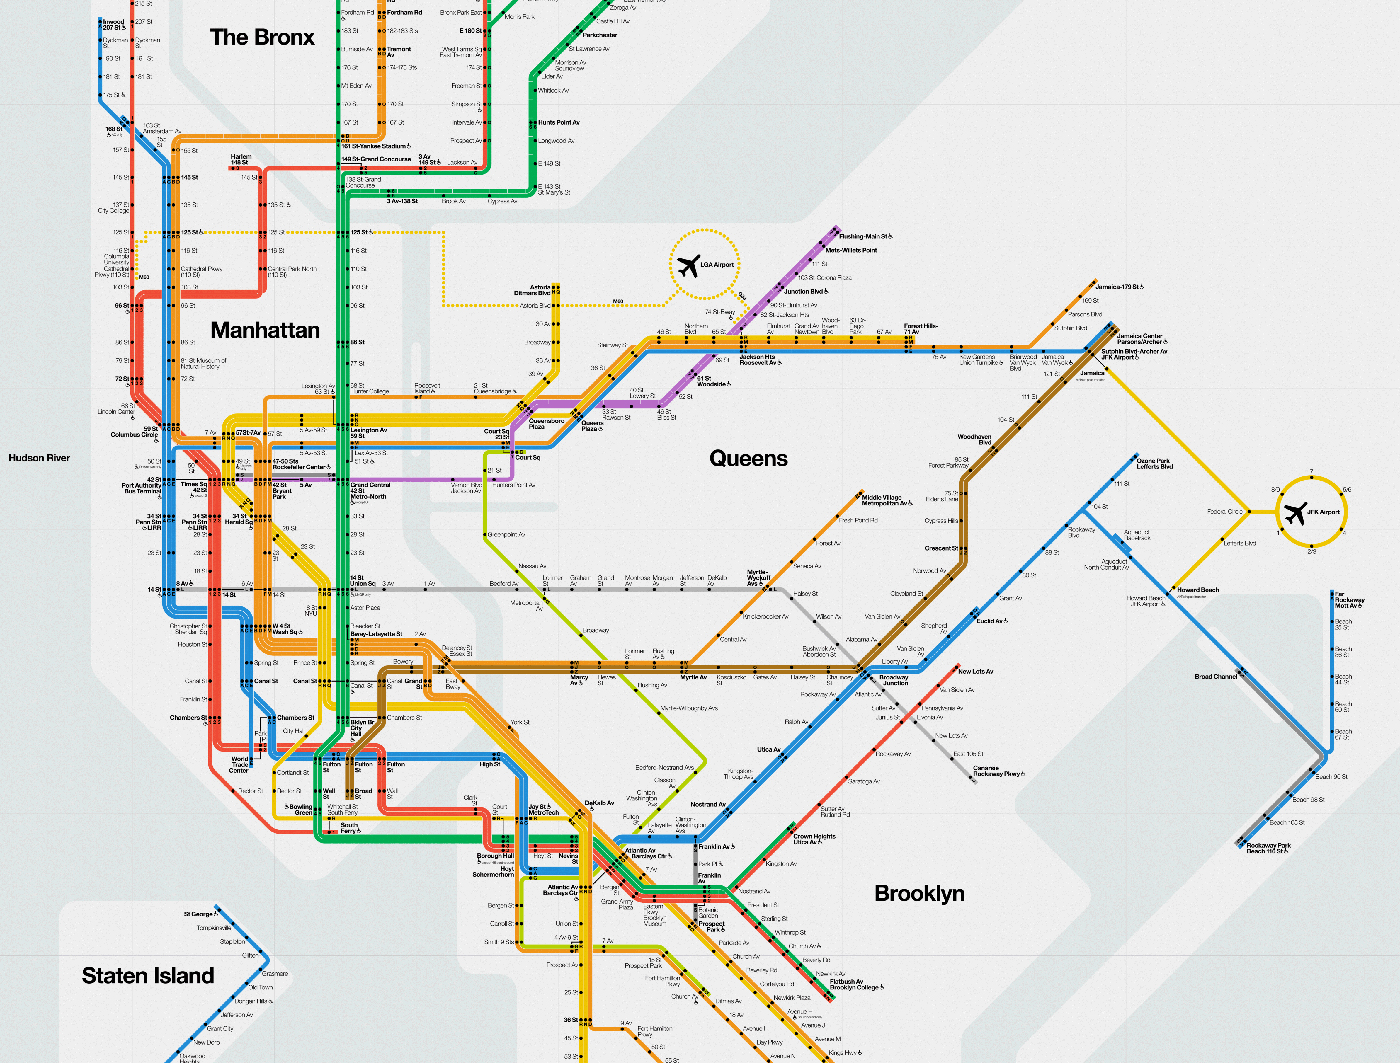 Massimo Vignelli 1972 Nyc Subway Map.Massimo Vignelli S Signed 2012 Nyc Subway Diagram Cool Hunting